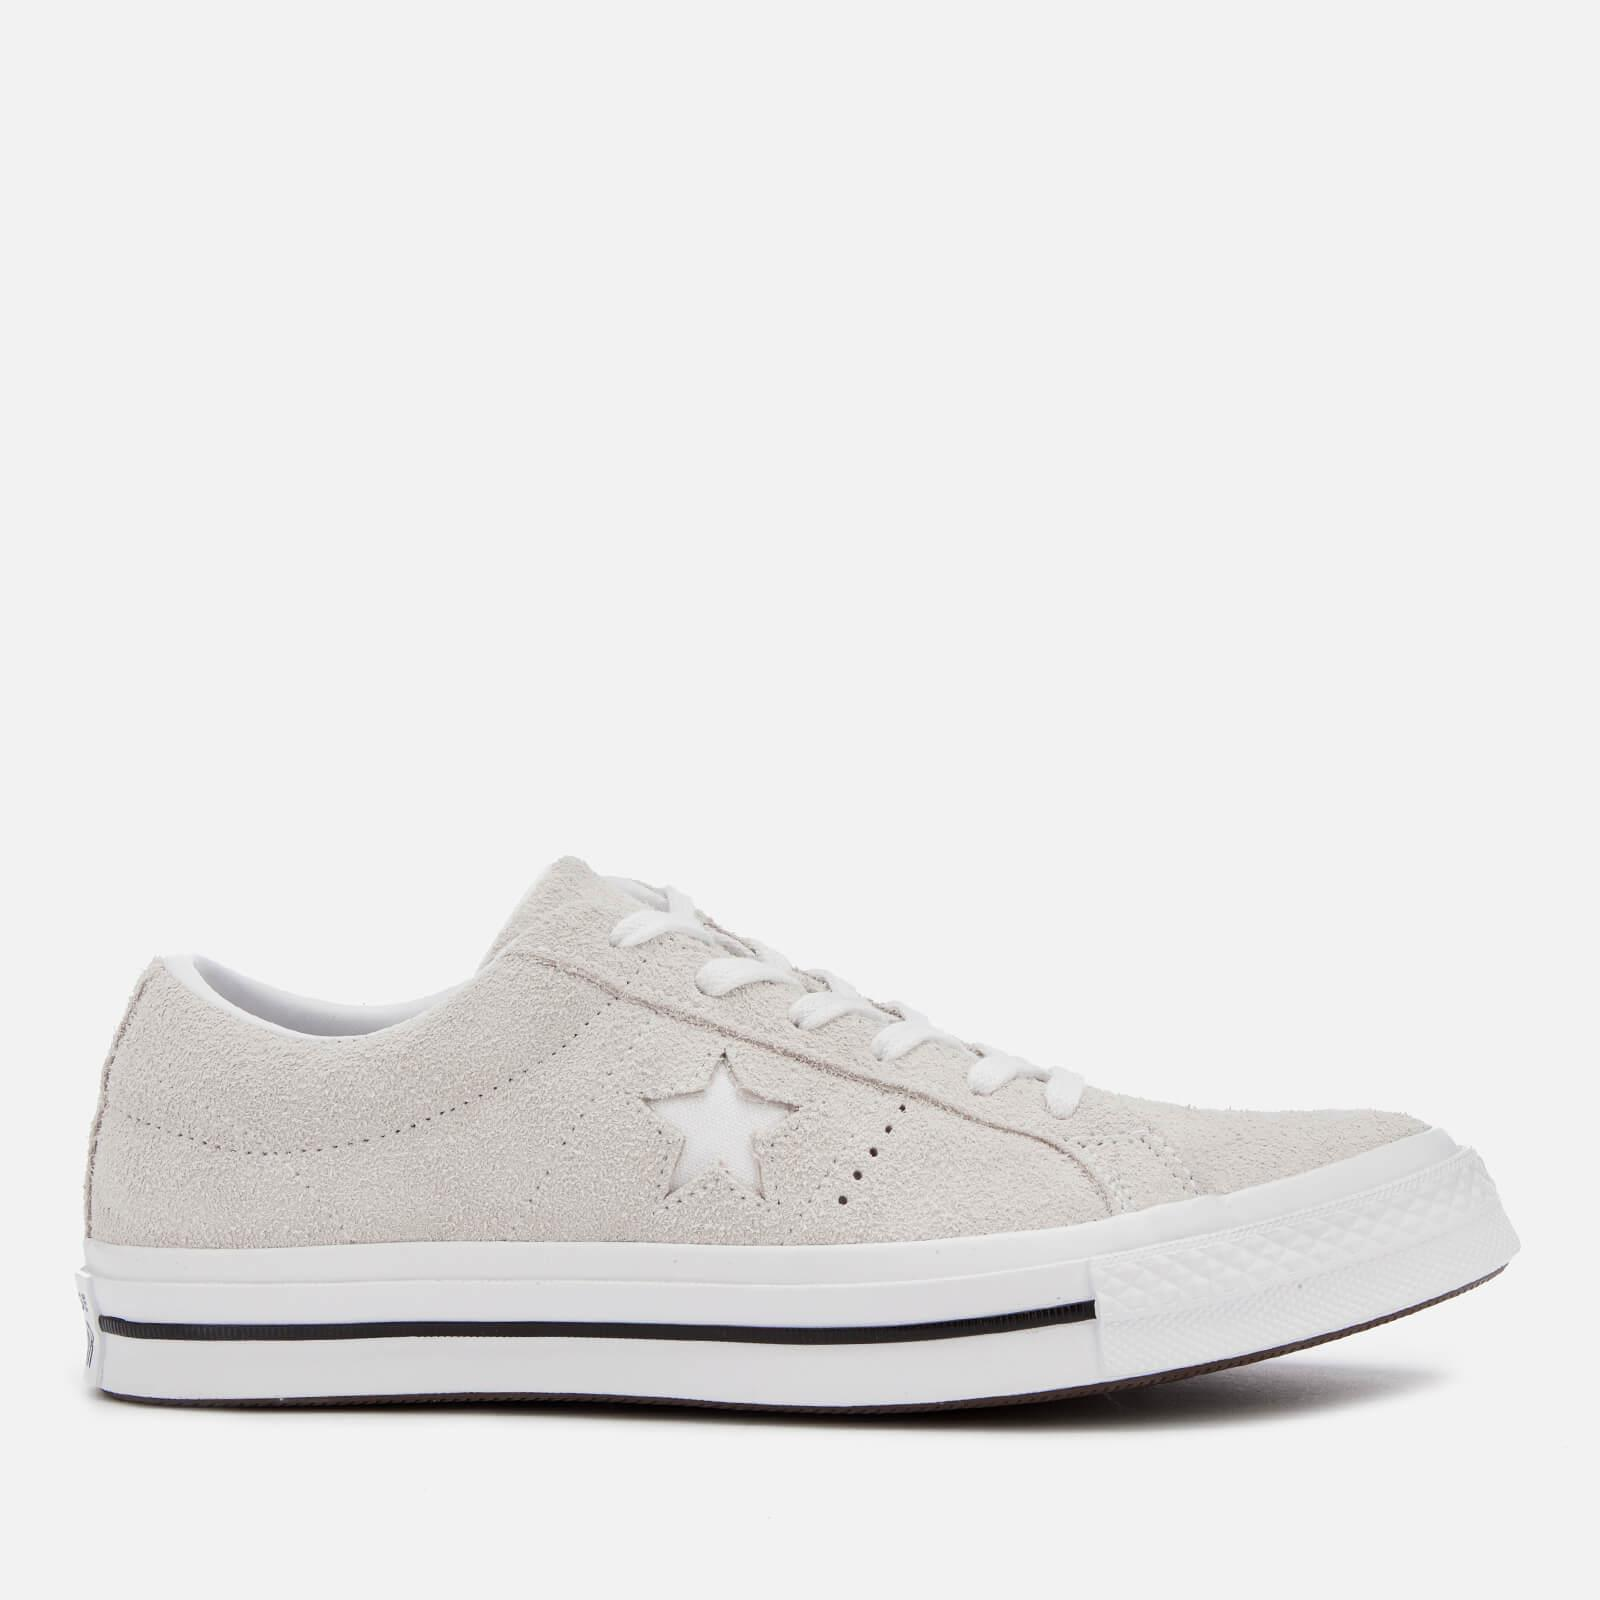 807bbef23c7072 Lyst - Converse One Star Ox Trainers in White for Men